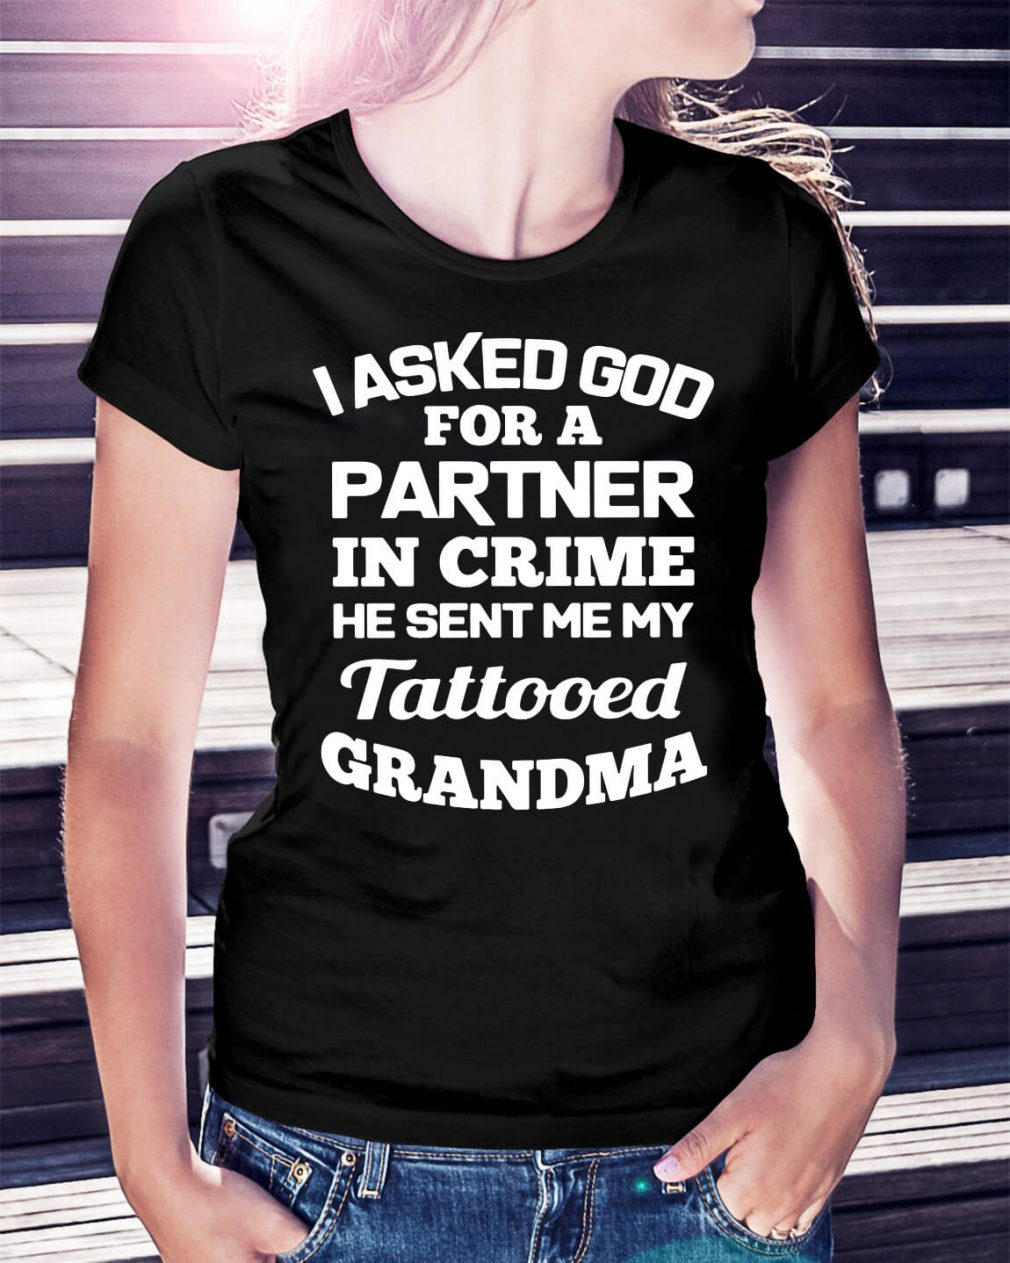 Official I asked God partner in crime he sent me my tattooed grandma shirt